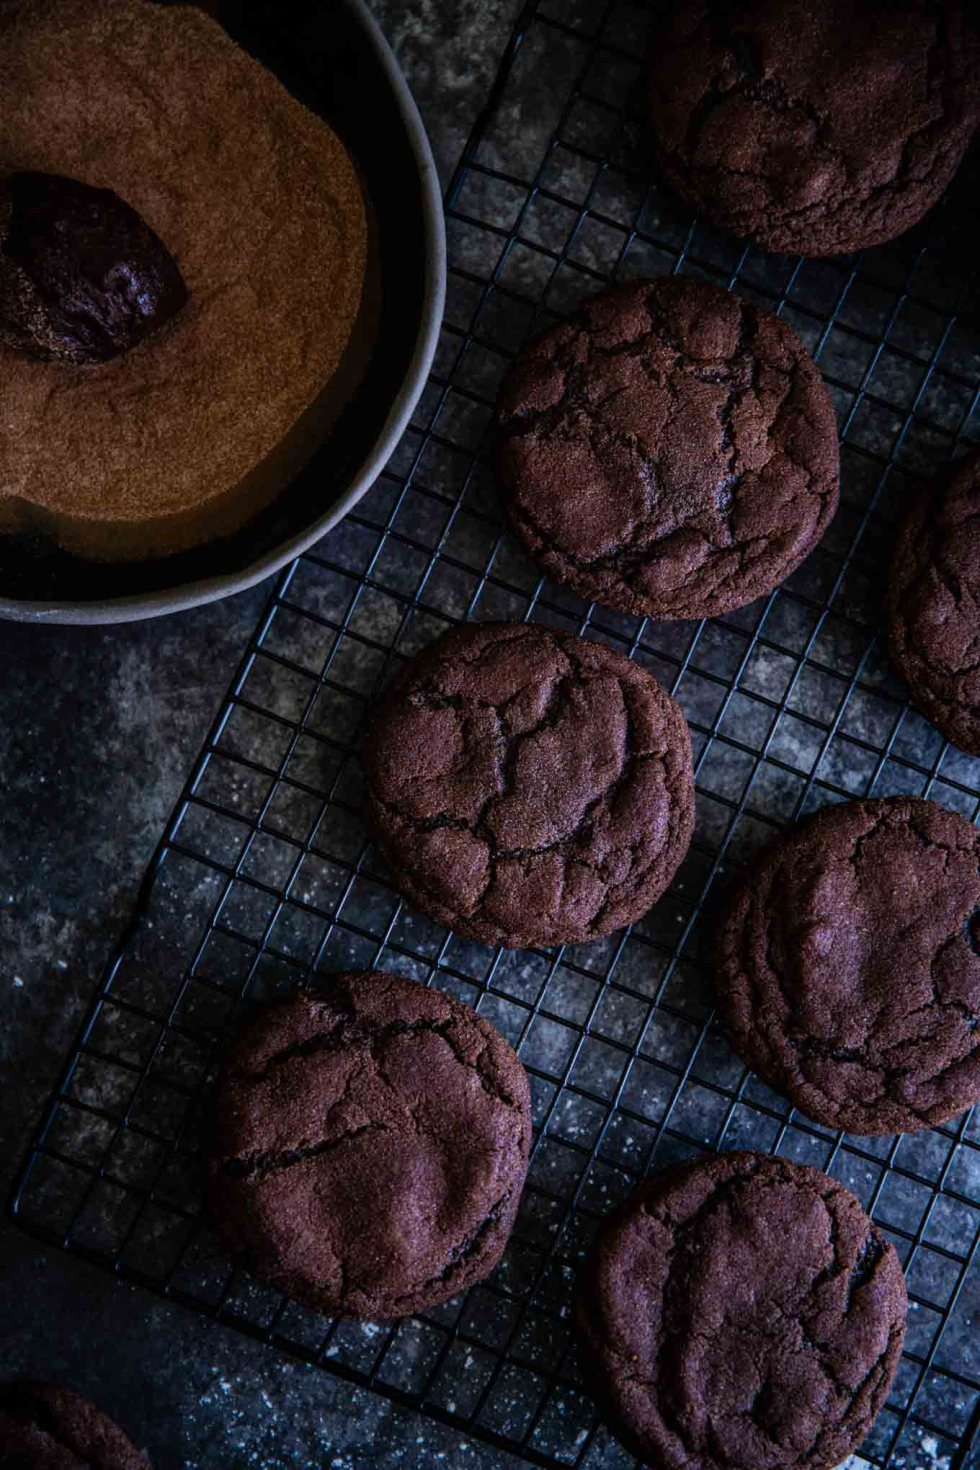 Snickerdiablos are fun, cinnamon chocolate cookies with a red chile ganache center! Reminiscent of mexican hot chocolate cookies with a very slow heat.